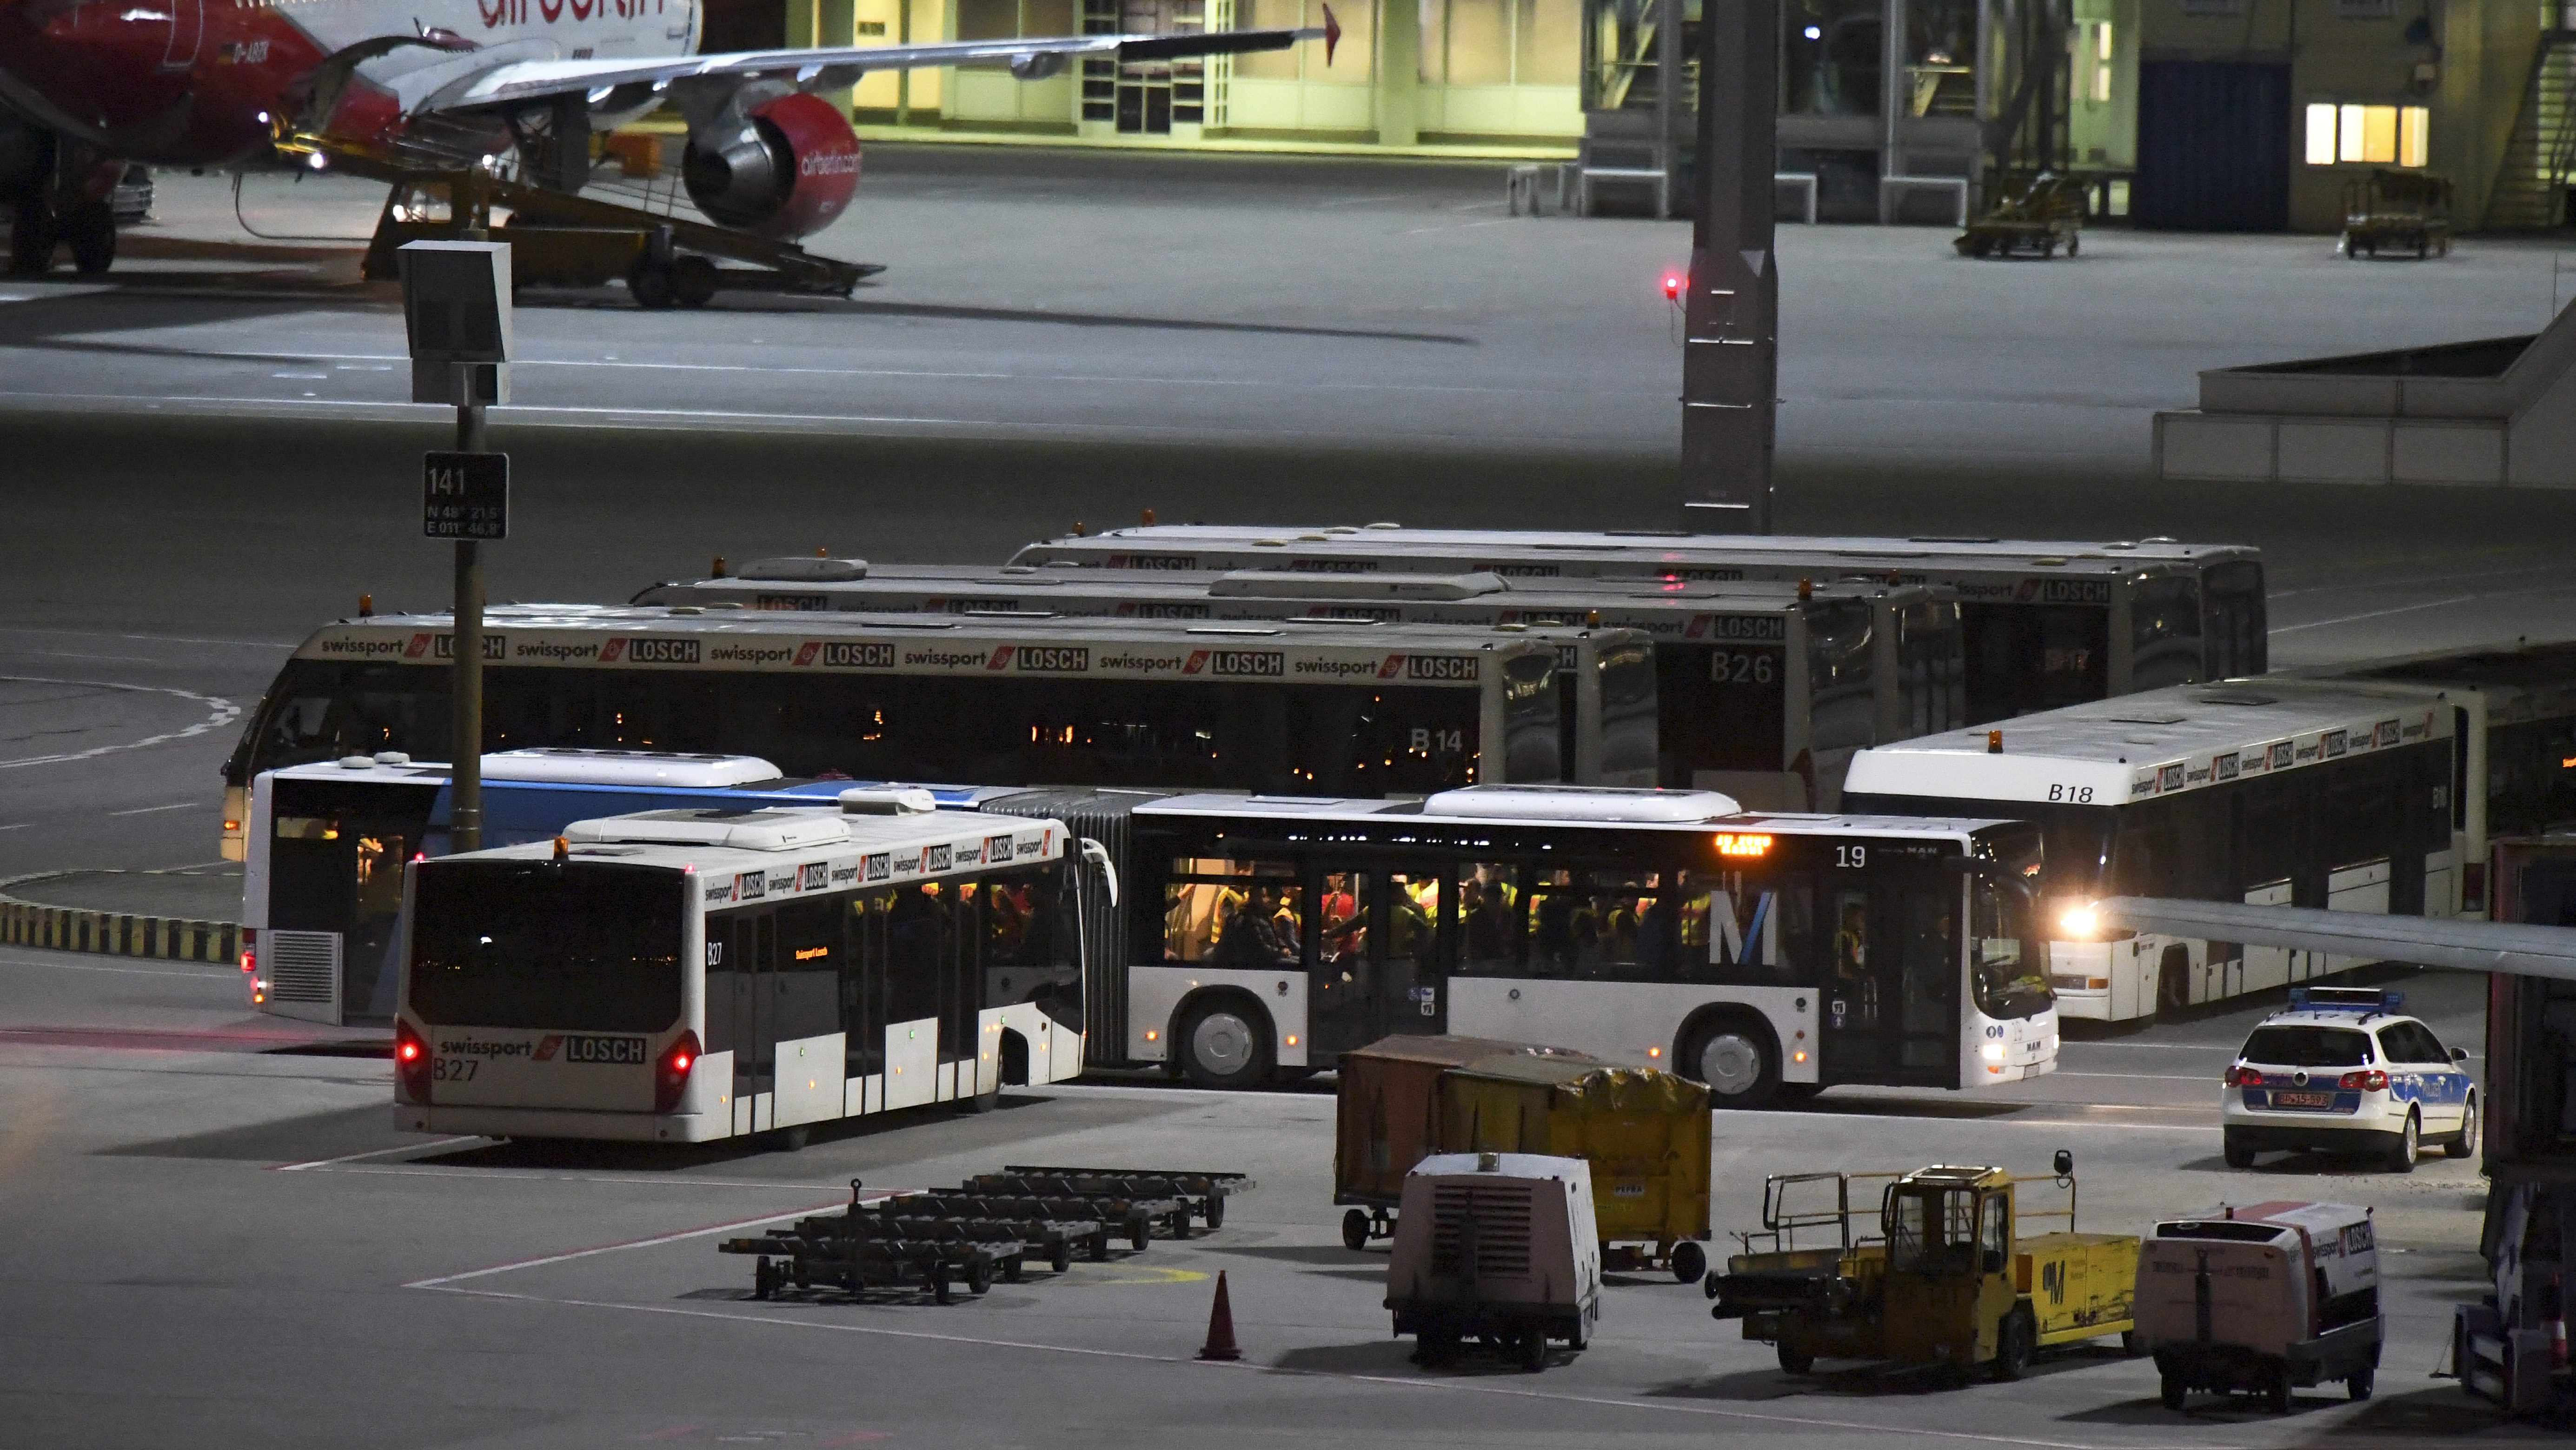 epa05809195 Busses stand next to an airplane to take in refugees who are being deported to Afghanistan, at the airport of Munich, Germany, 22 February 2017. According to reports, Germany was set to carry out another deportation of some 50 rejected asylum seekers to Afghanistan, a move that has sparked criticism from opposition parties and activist groups.  EPA/SEBASTIAN WIDMANN